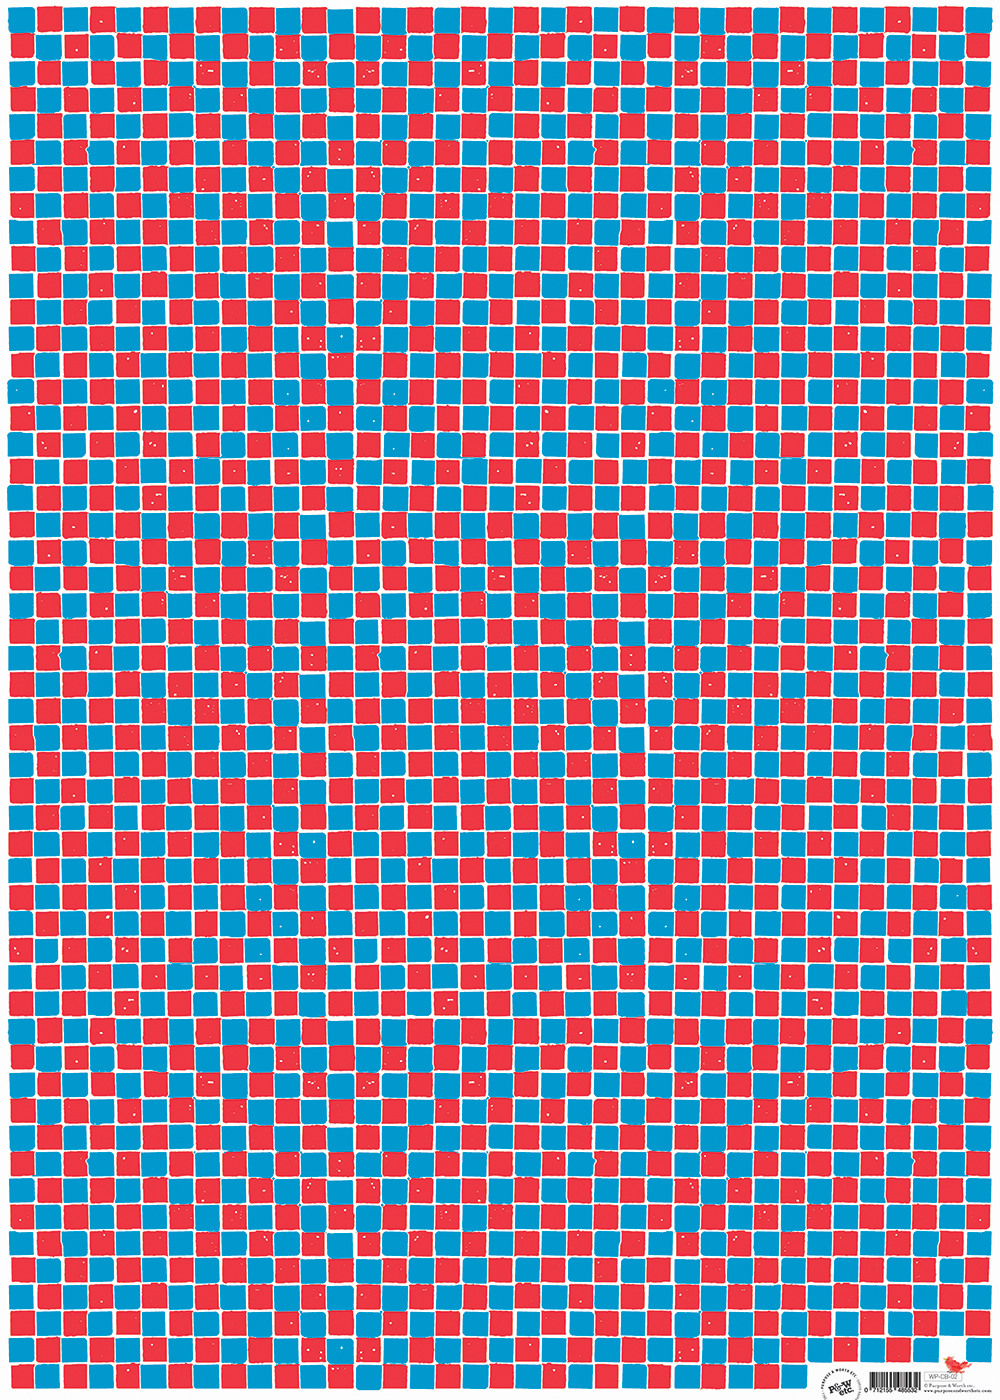 Checkerboard Red + blue: WP_CB_02